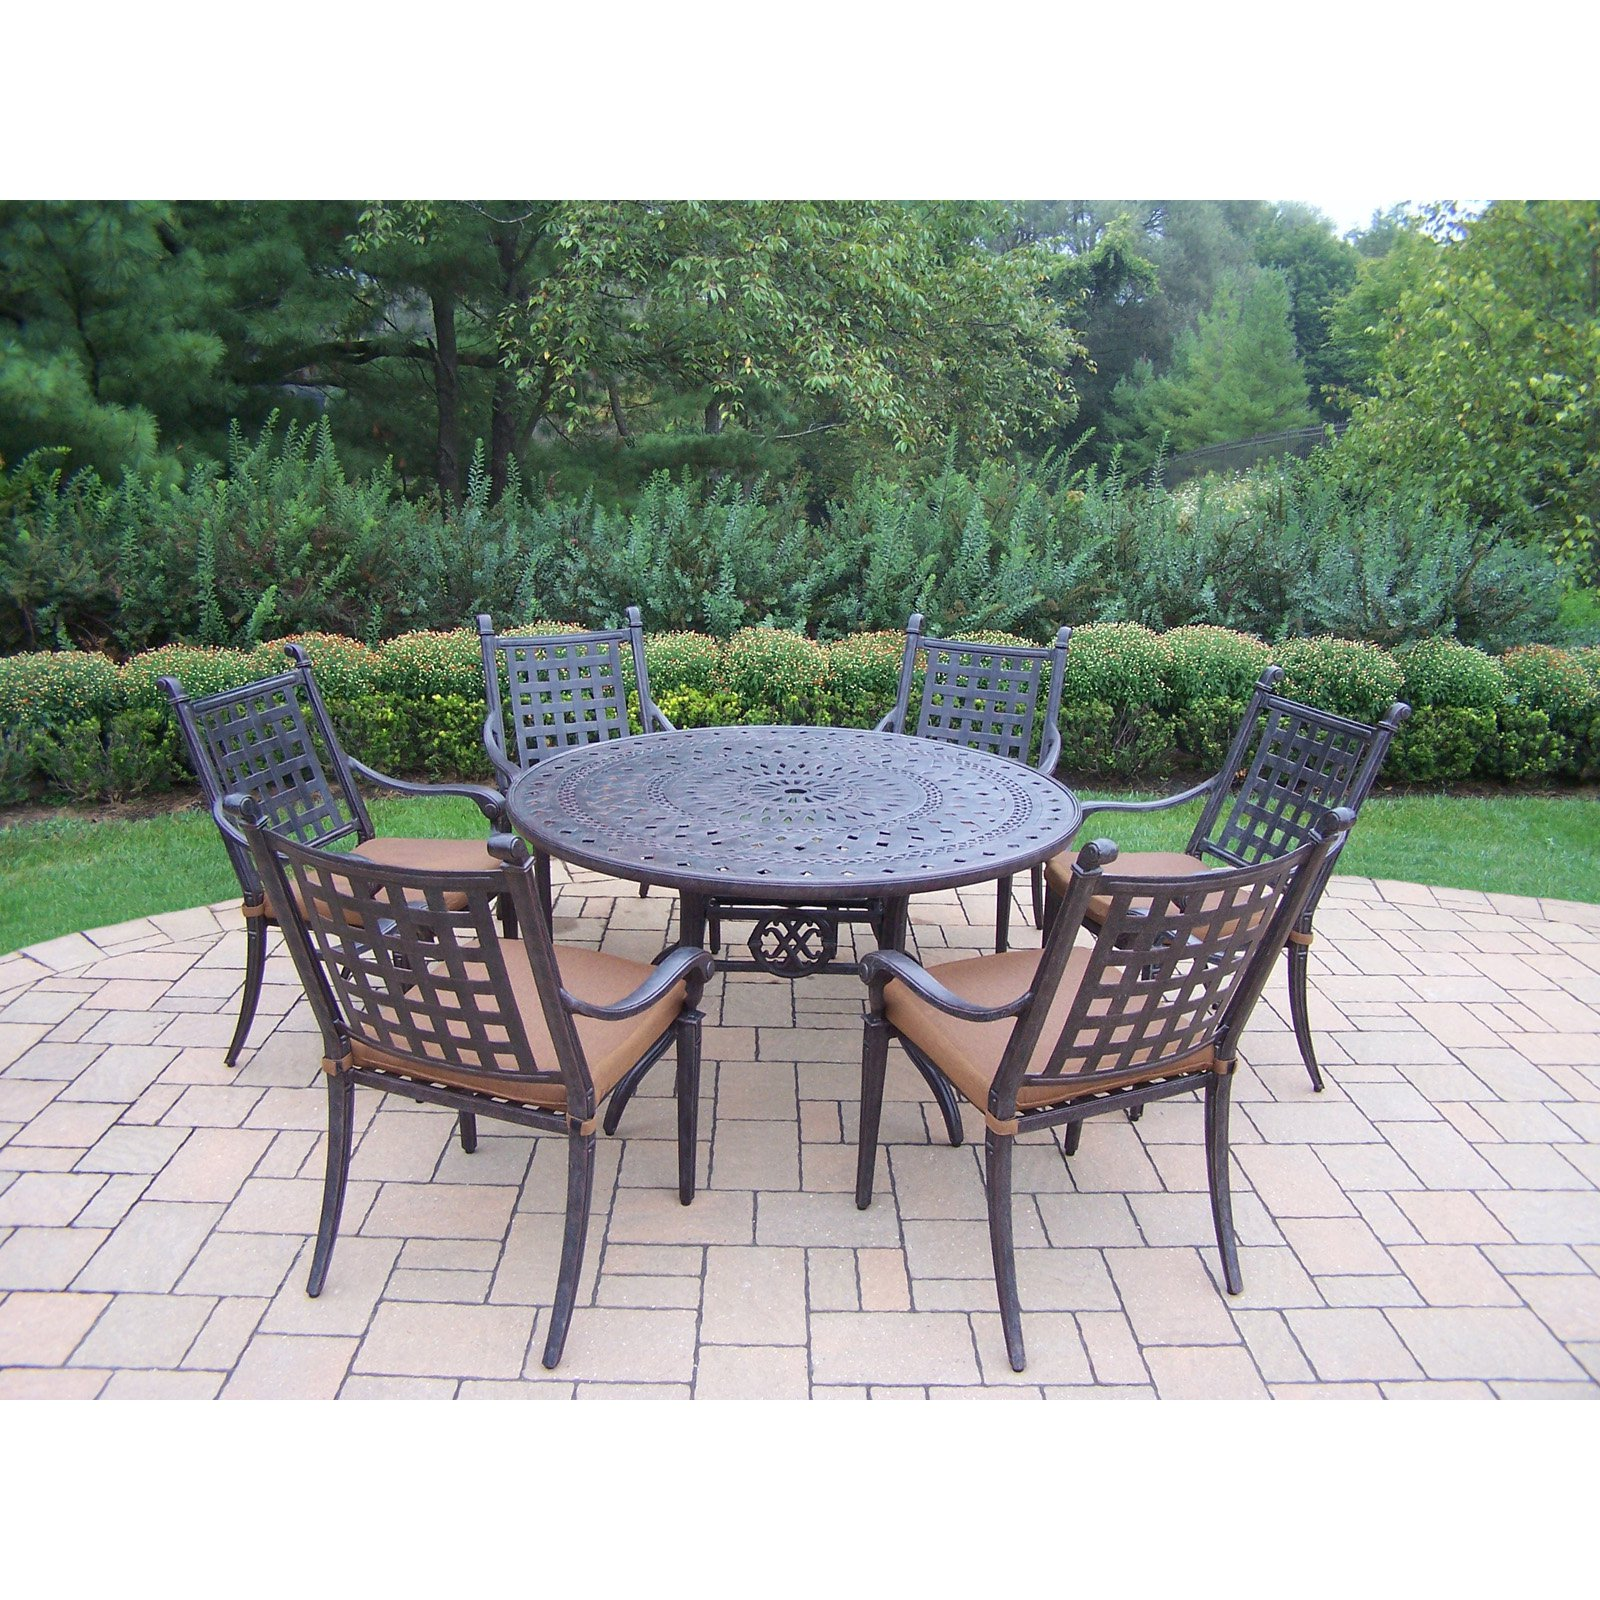 Oakland Living Belmont 7 Piece Round Patio Dining Room Set by Oakland Living Corp